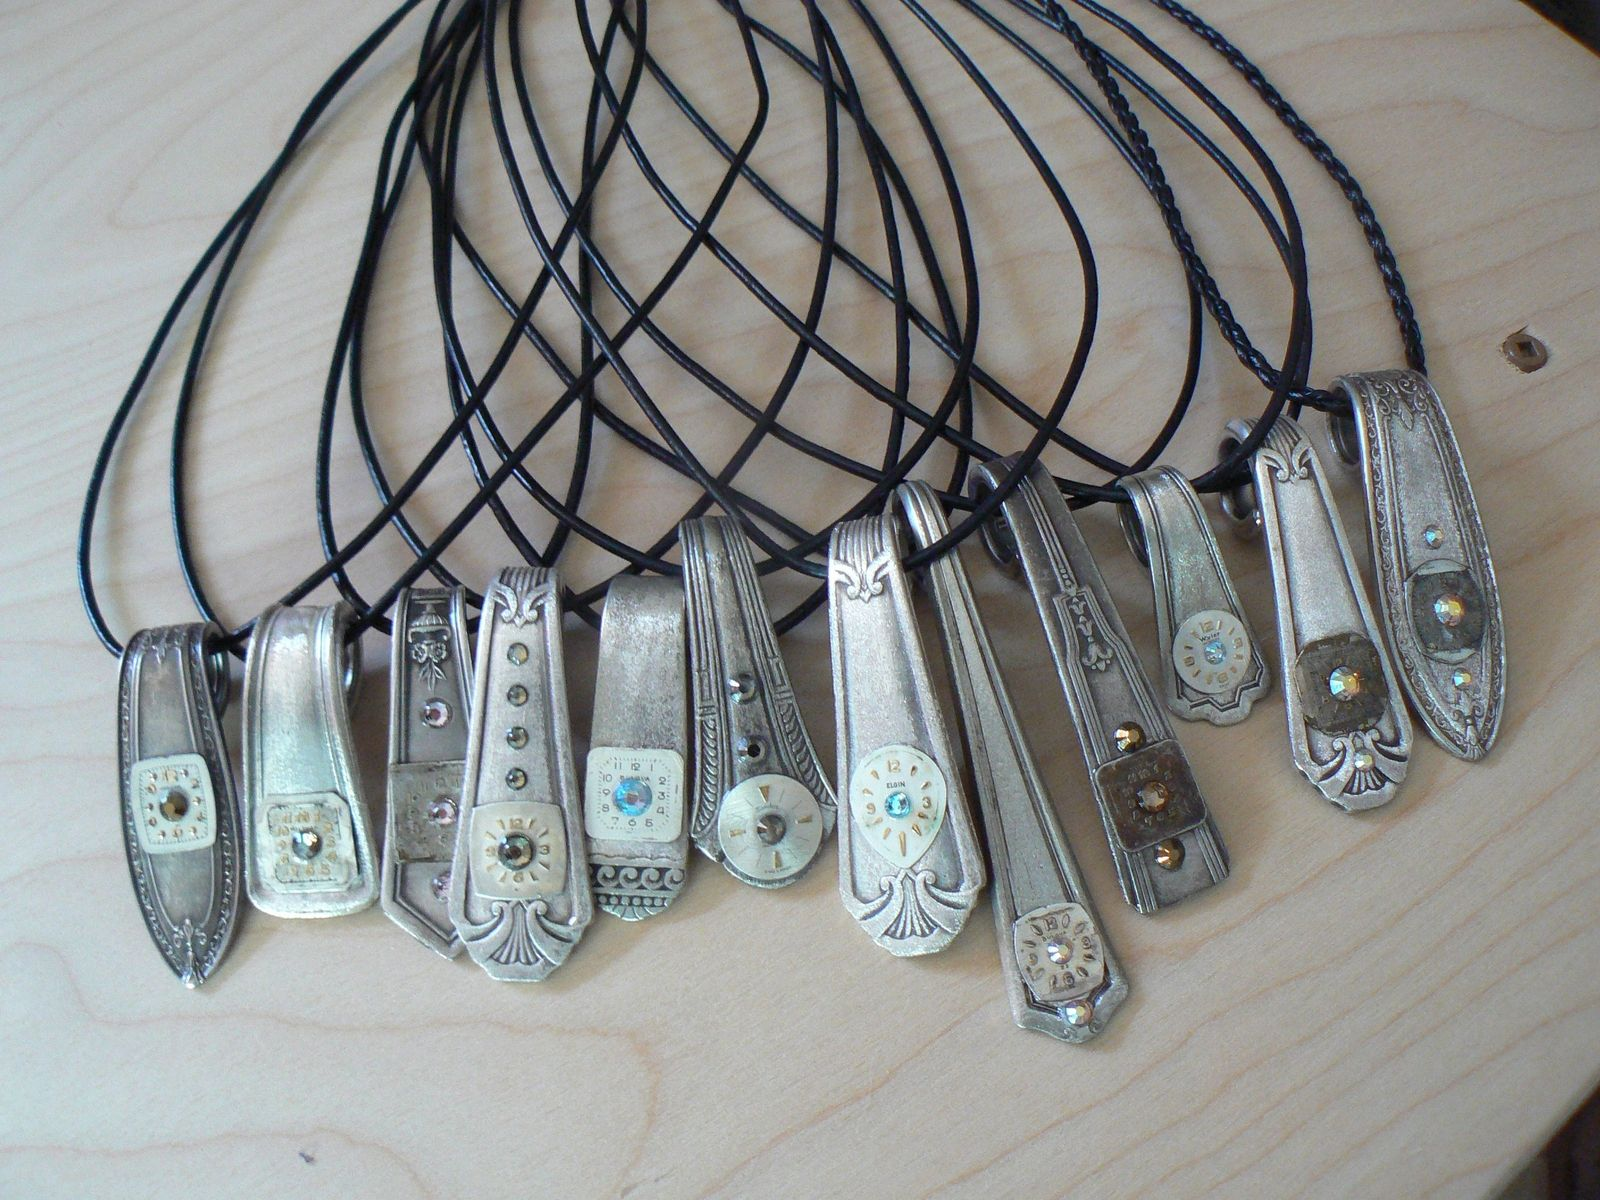 Ring In The Steampunk Decor To Pimp Up Your Home: Hand Made Steampunk Spoon Handle Watch Face Necklaces By